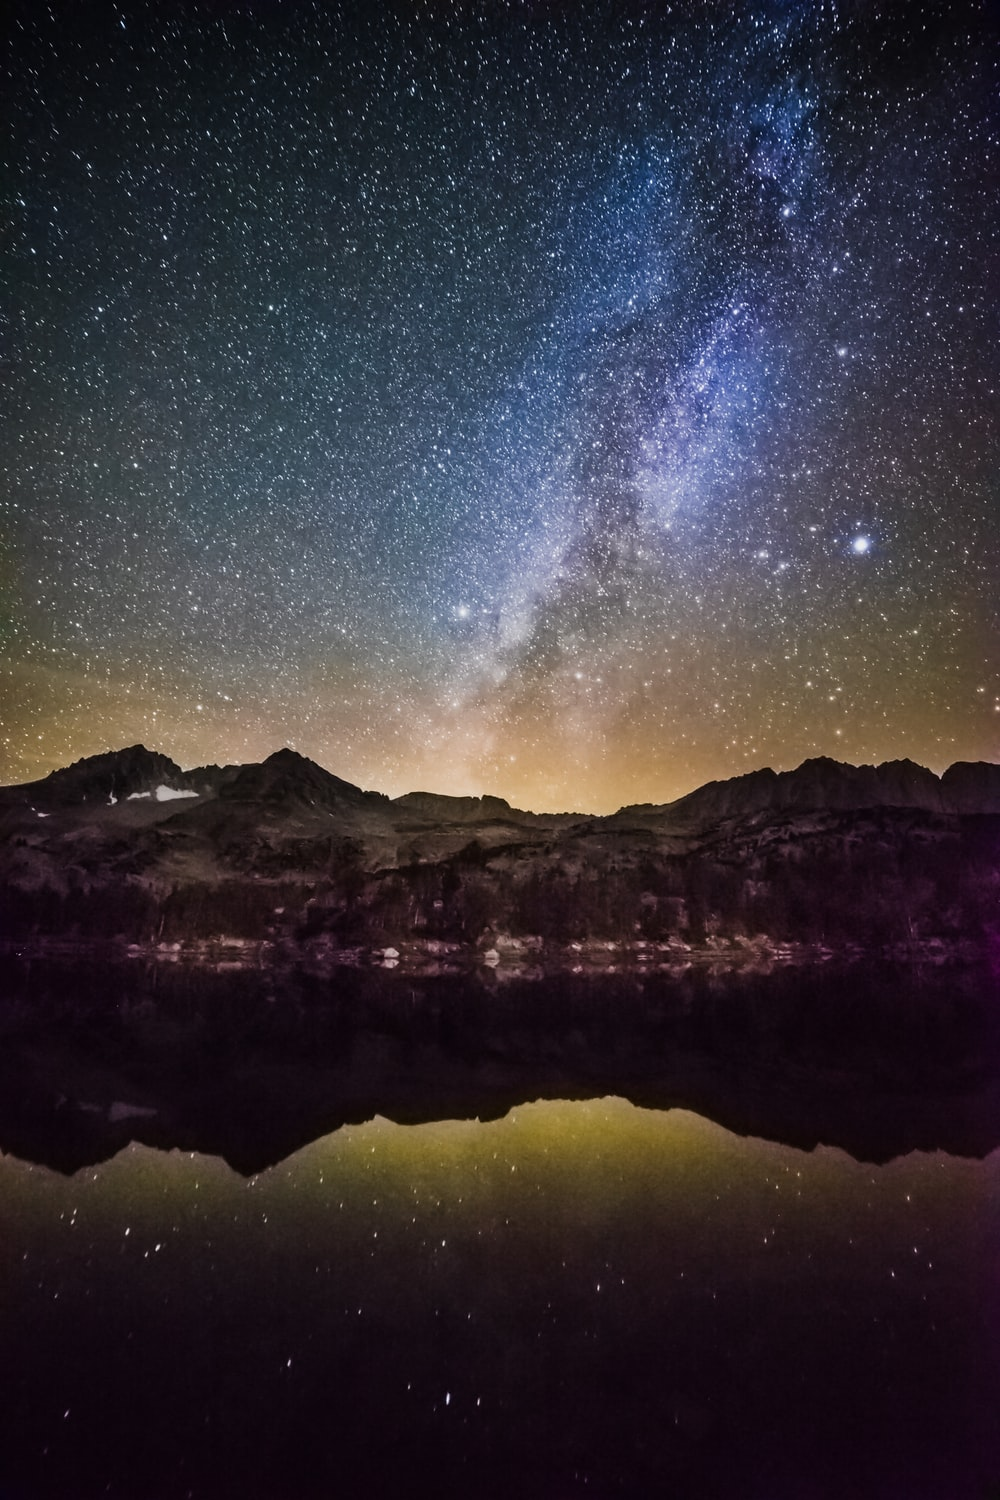 starry night sky over the mountain by the glassy lake